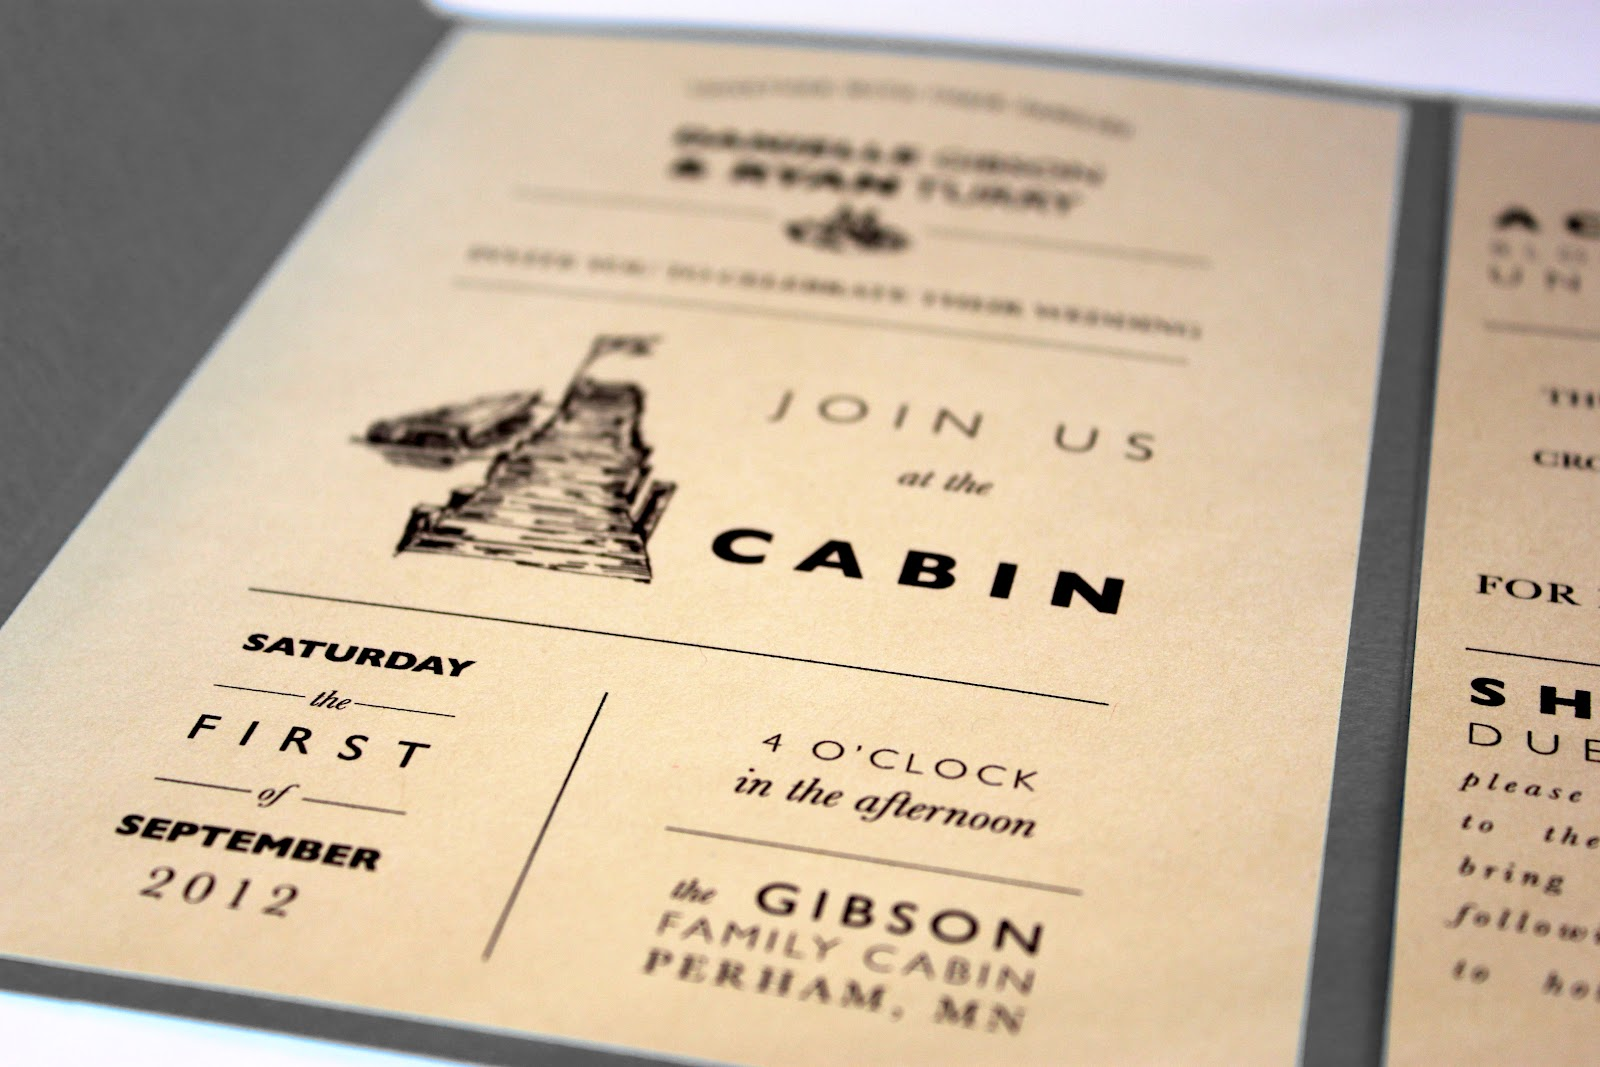 Fishing Wedding Invitations was nice invitation ideas